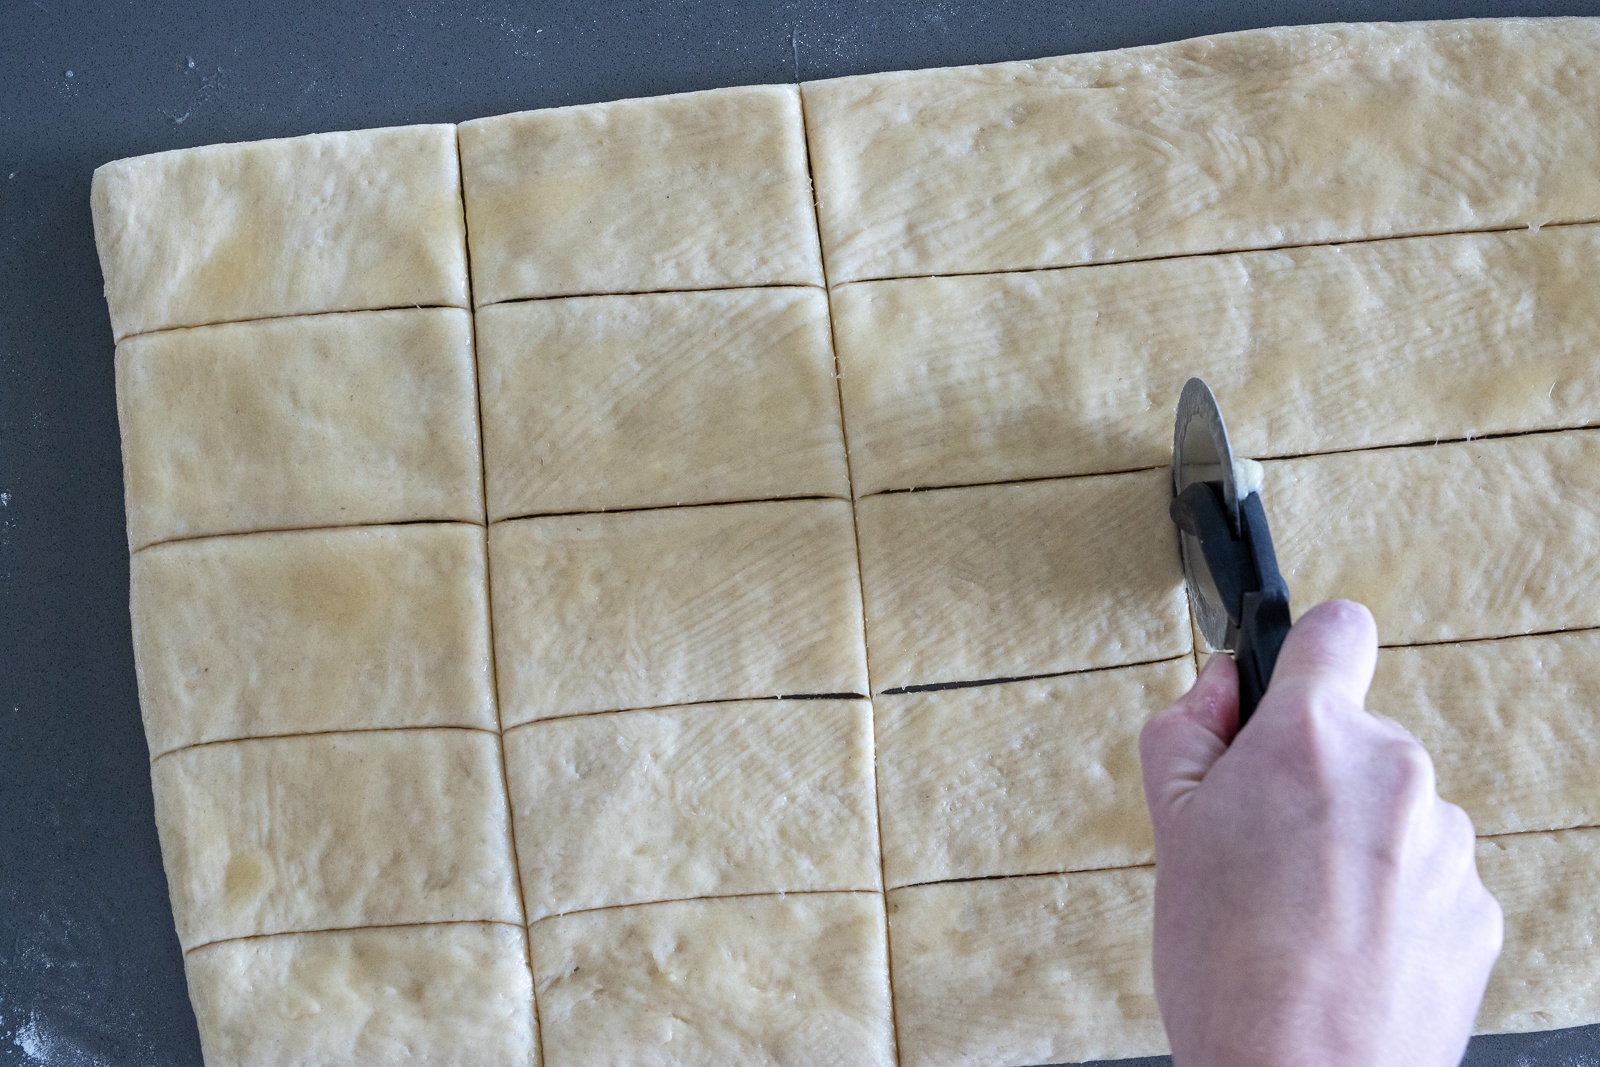 Woman cutting Parker House Rolls into rectangles for baking.